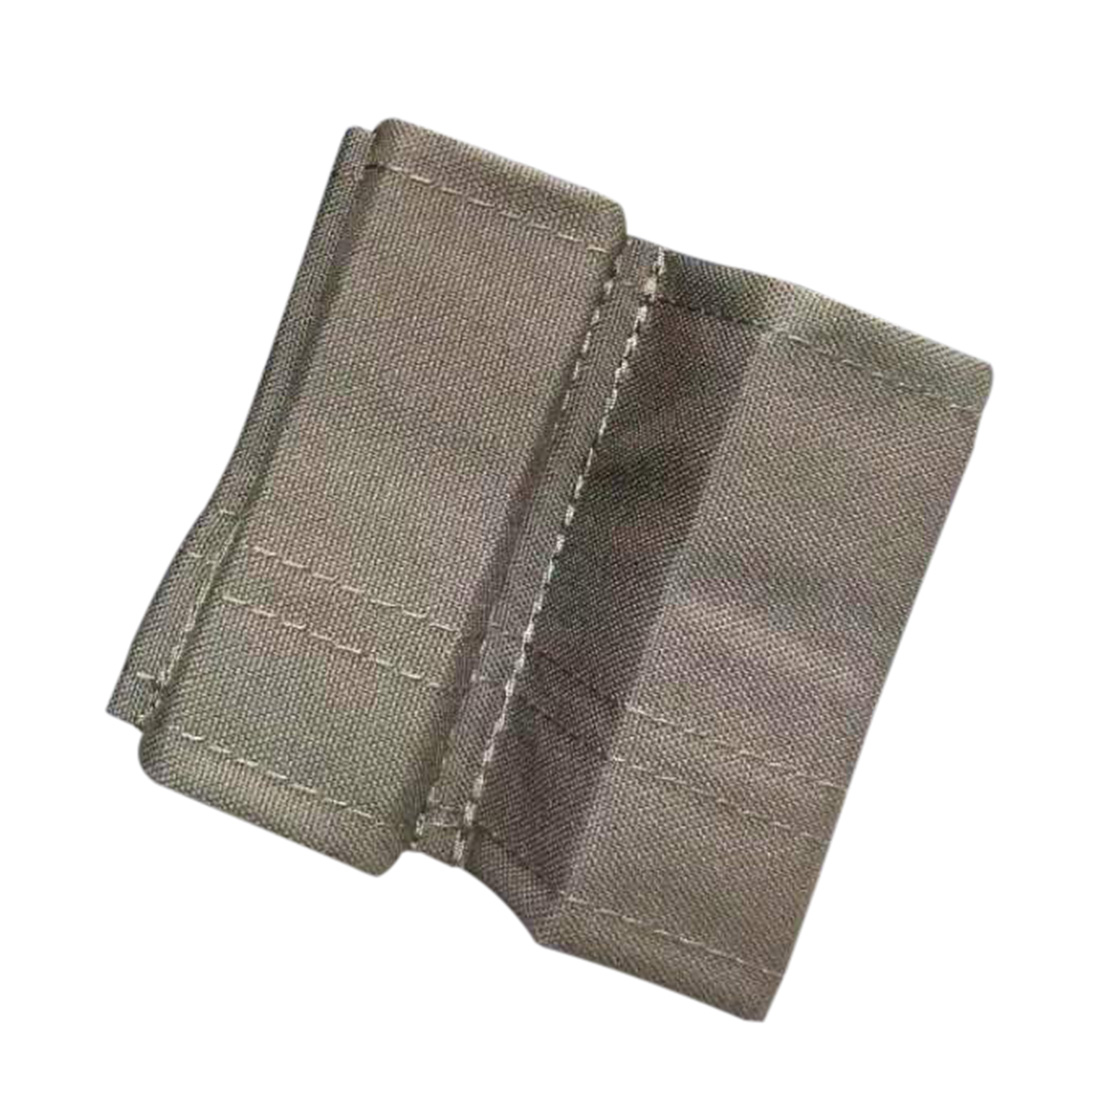 9mm KYWI Double /Single Magazine Pouch Outdoor Hunting Game Equipment Outdoors Tactics Accessories New